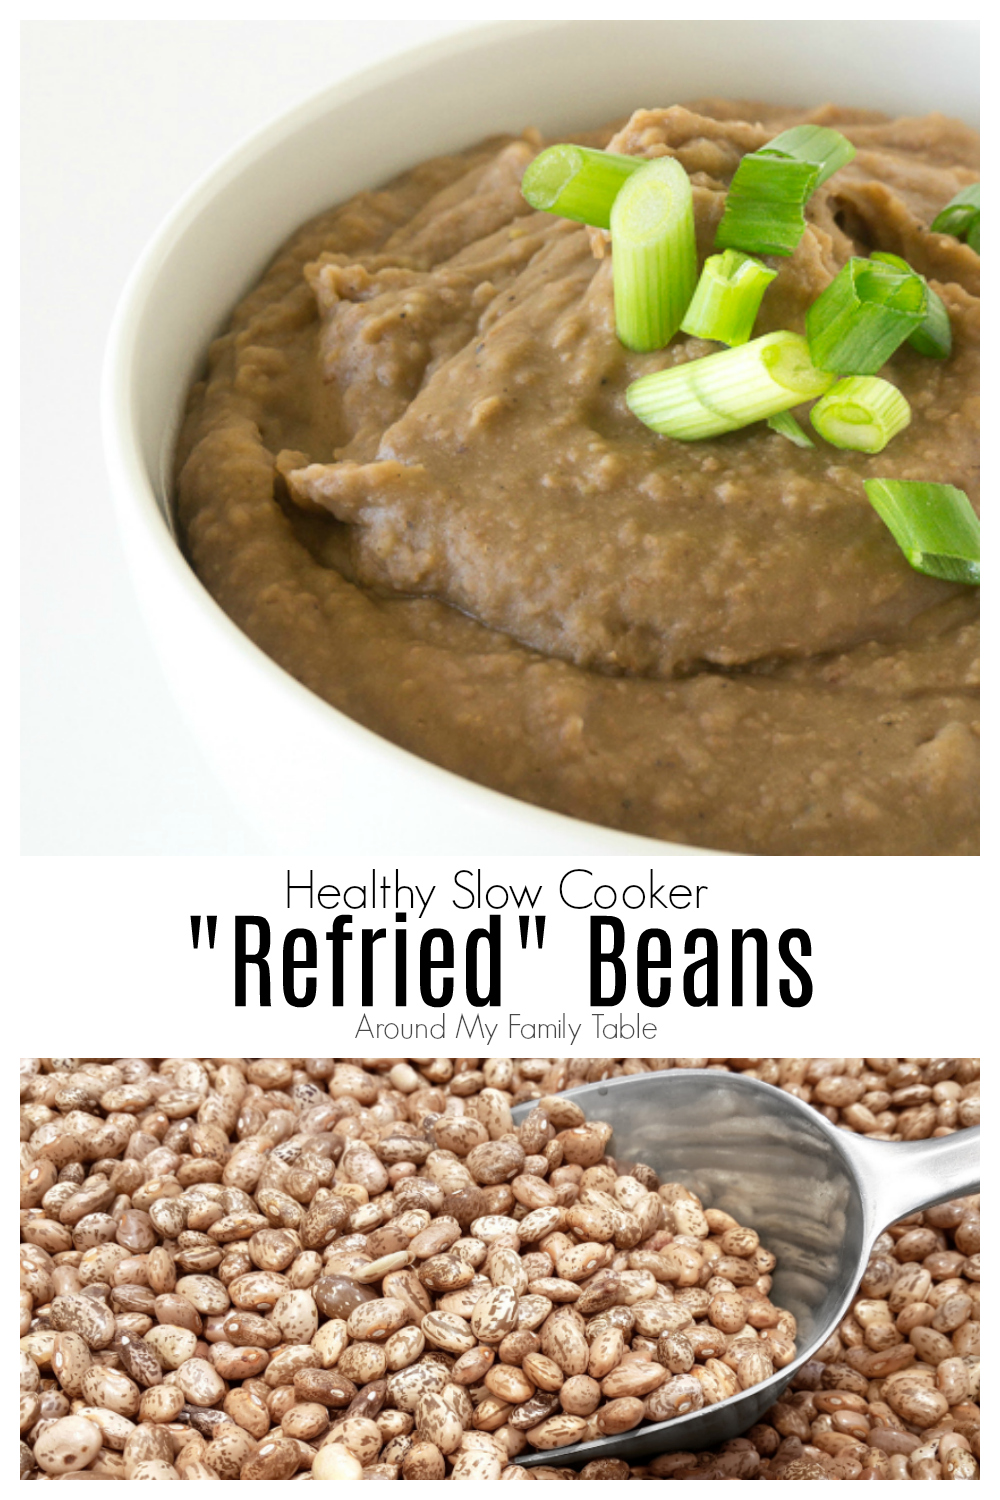 This refried beans recipe is easy to make in your crockpot or pressure cooker! It produces creamy smooth beans that can be used as a side dish, or added to tacos, burritos, and other Mexican slow cooker recipes. #refriedbeans #pintobeans #slowocooker #crockpot #instantpot #pressurecooker #mexicanfood #vegetarian